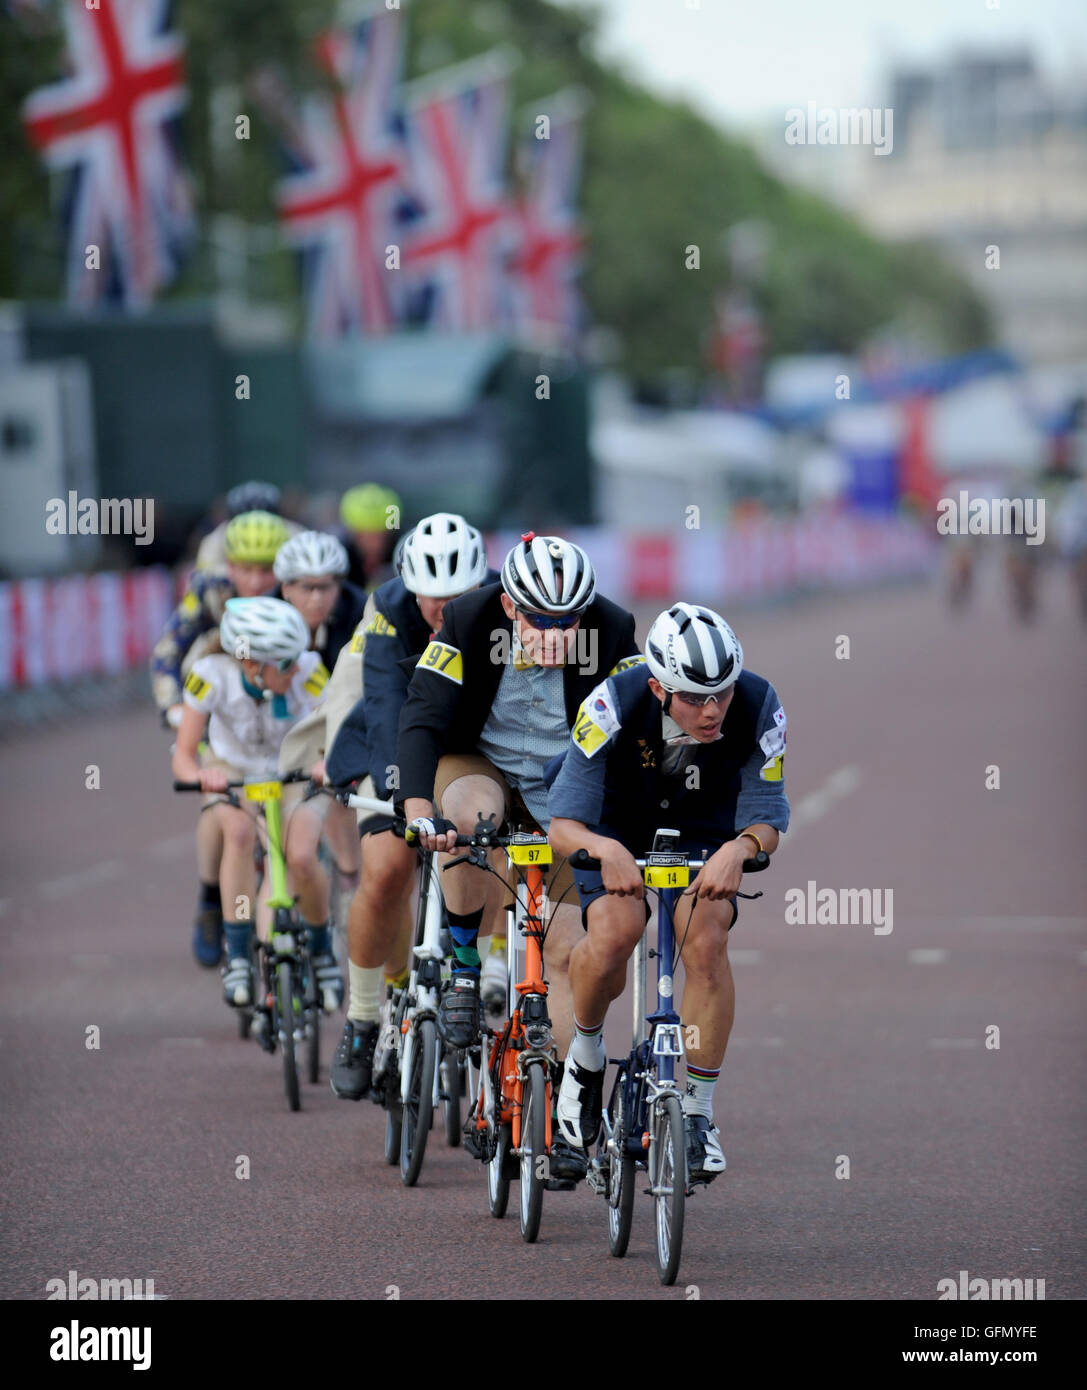 Central London, UK, 30th July 2016. Brompton World Championship Final. Riders race down The Mall during the Brompton Stock Photo